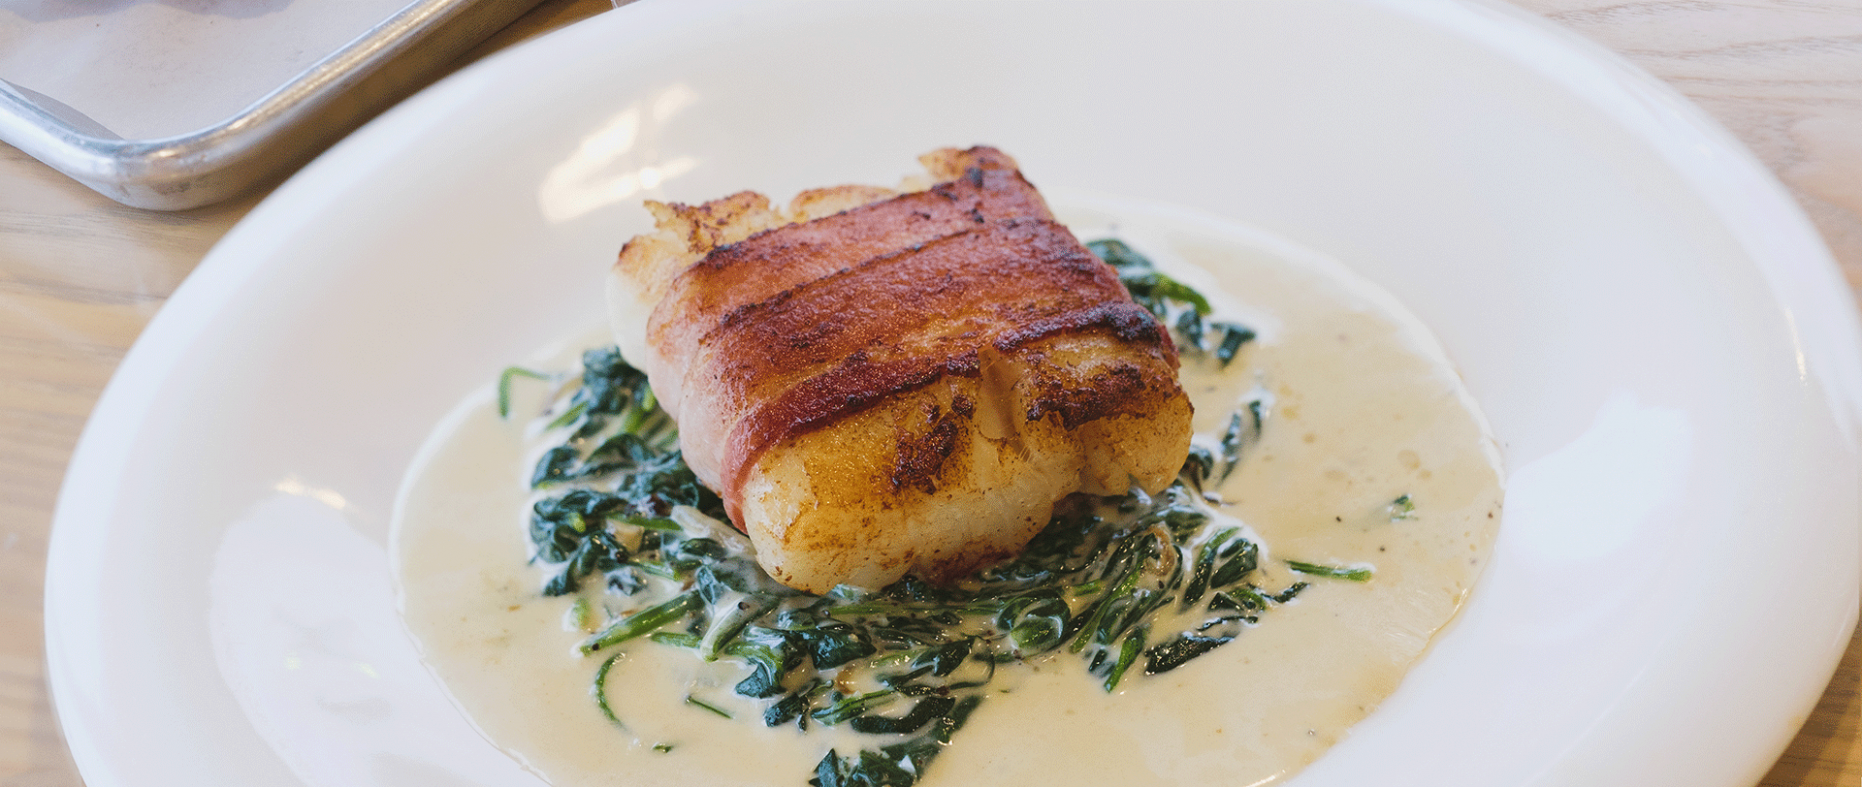 Bacon-wrapped Cod with Creamed Spinach